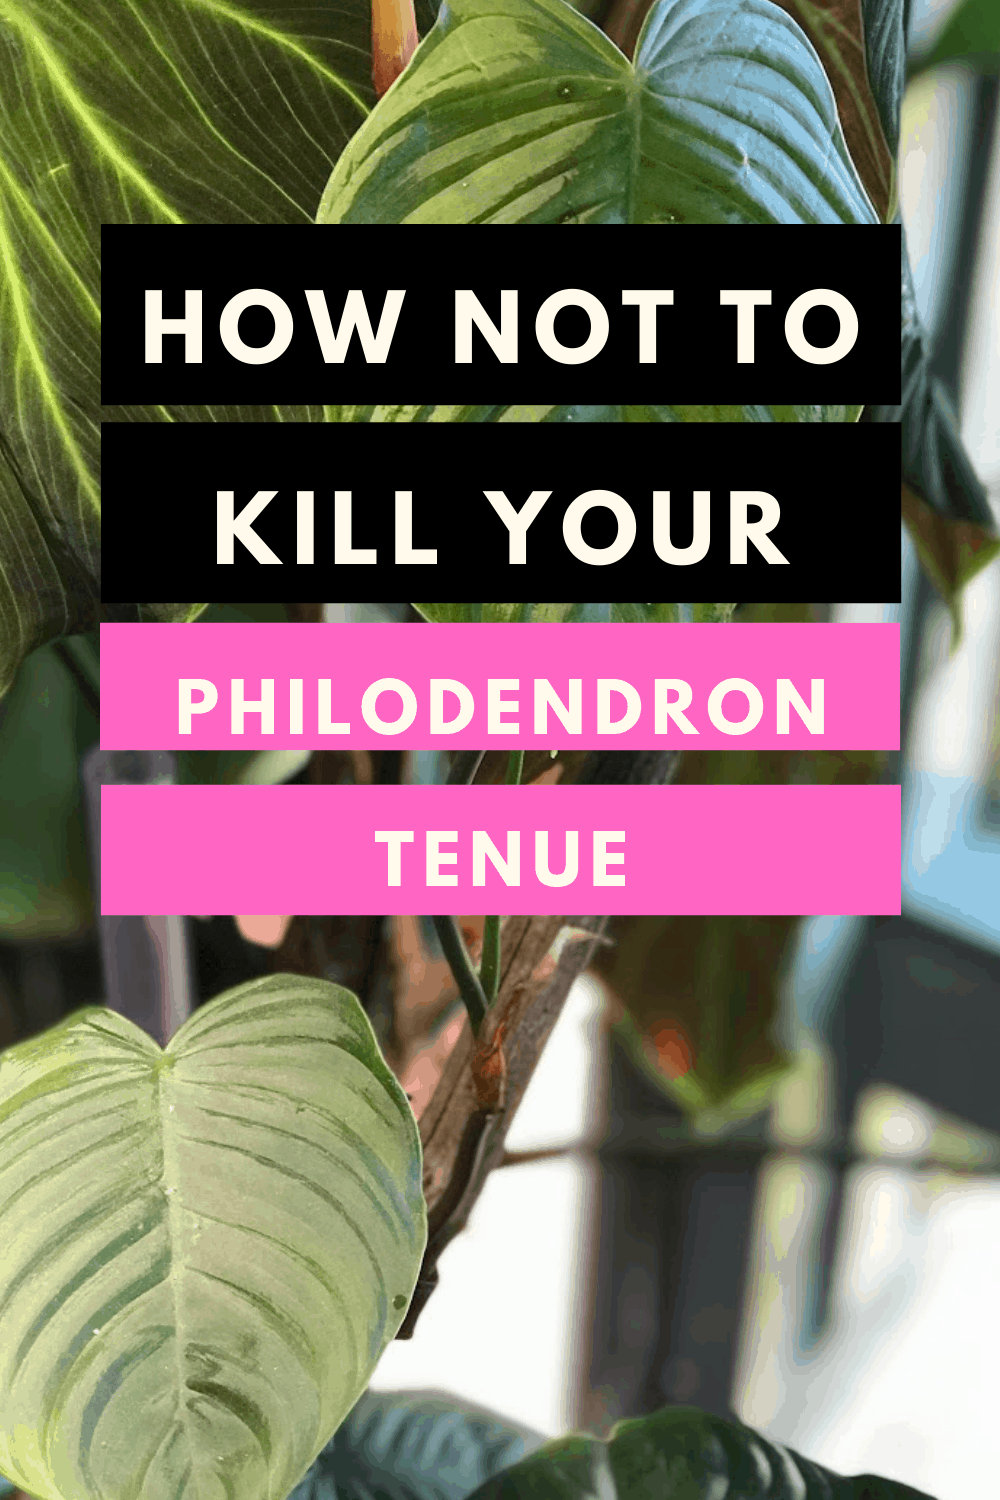 Philodendron Tenue Care